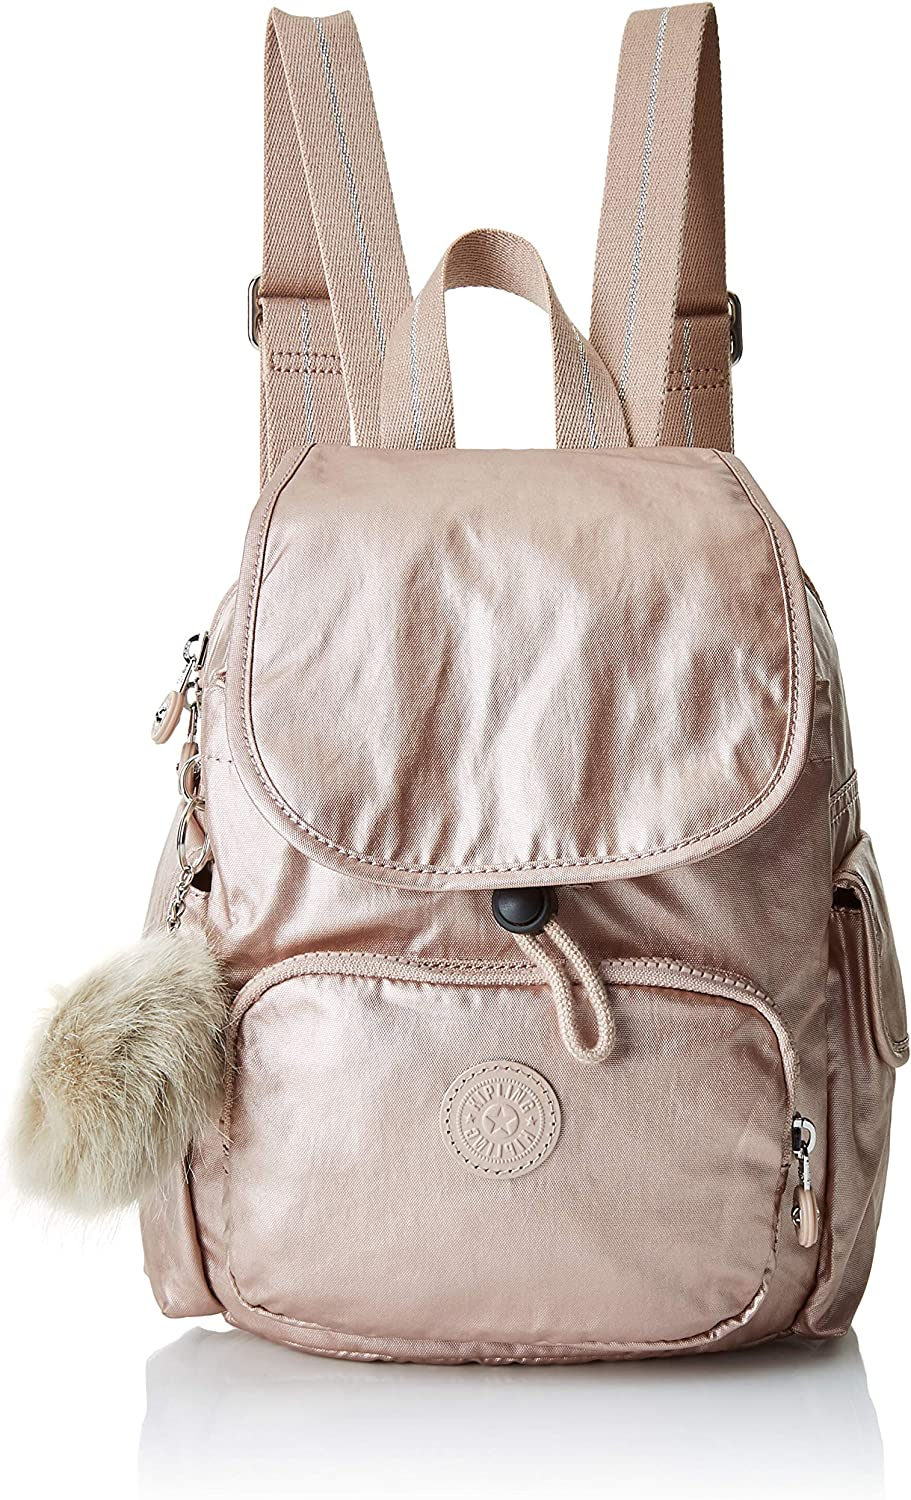 Kipling City Pack S Mini Backpack Metallic Blush